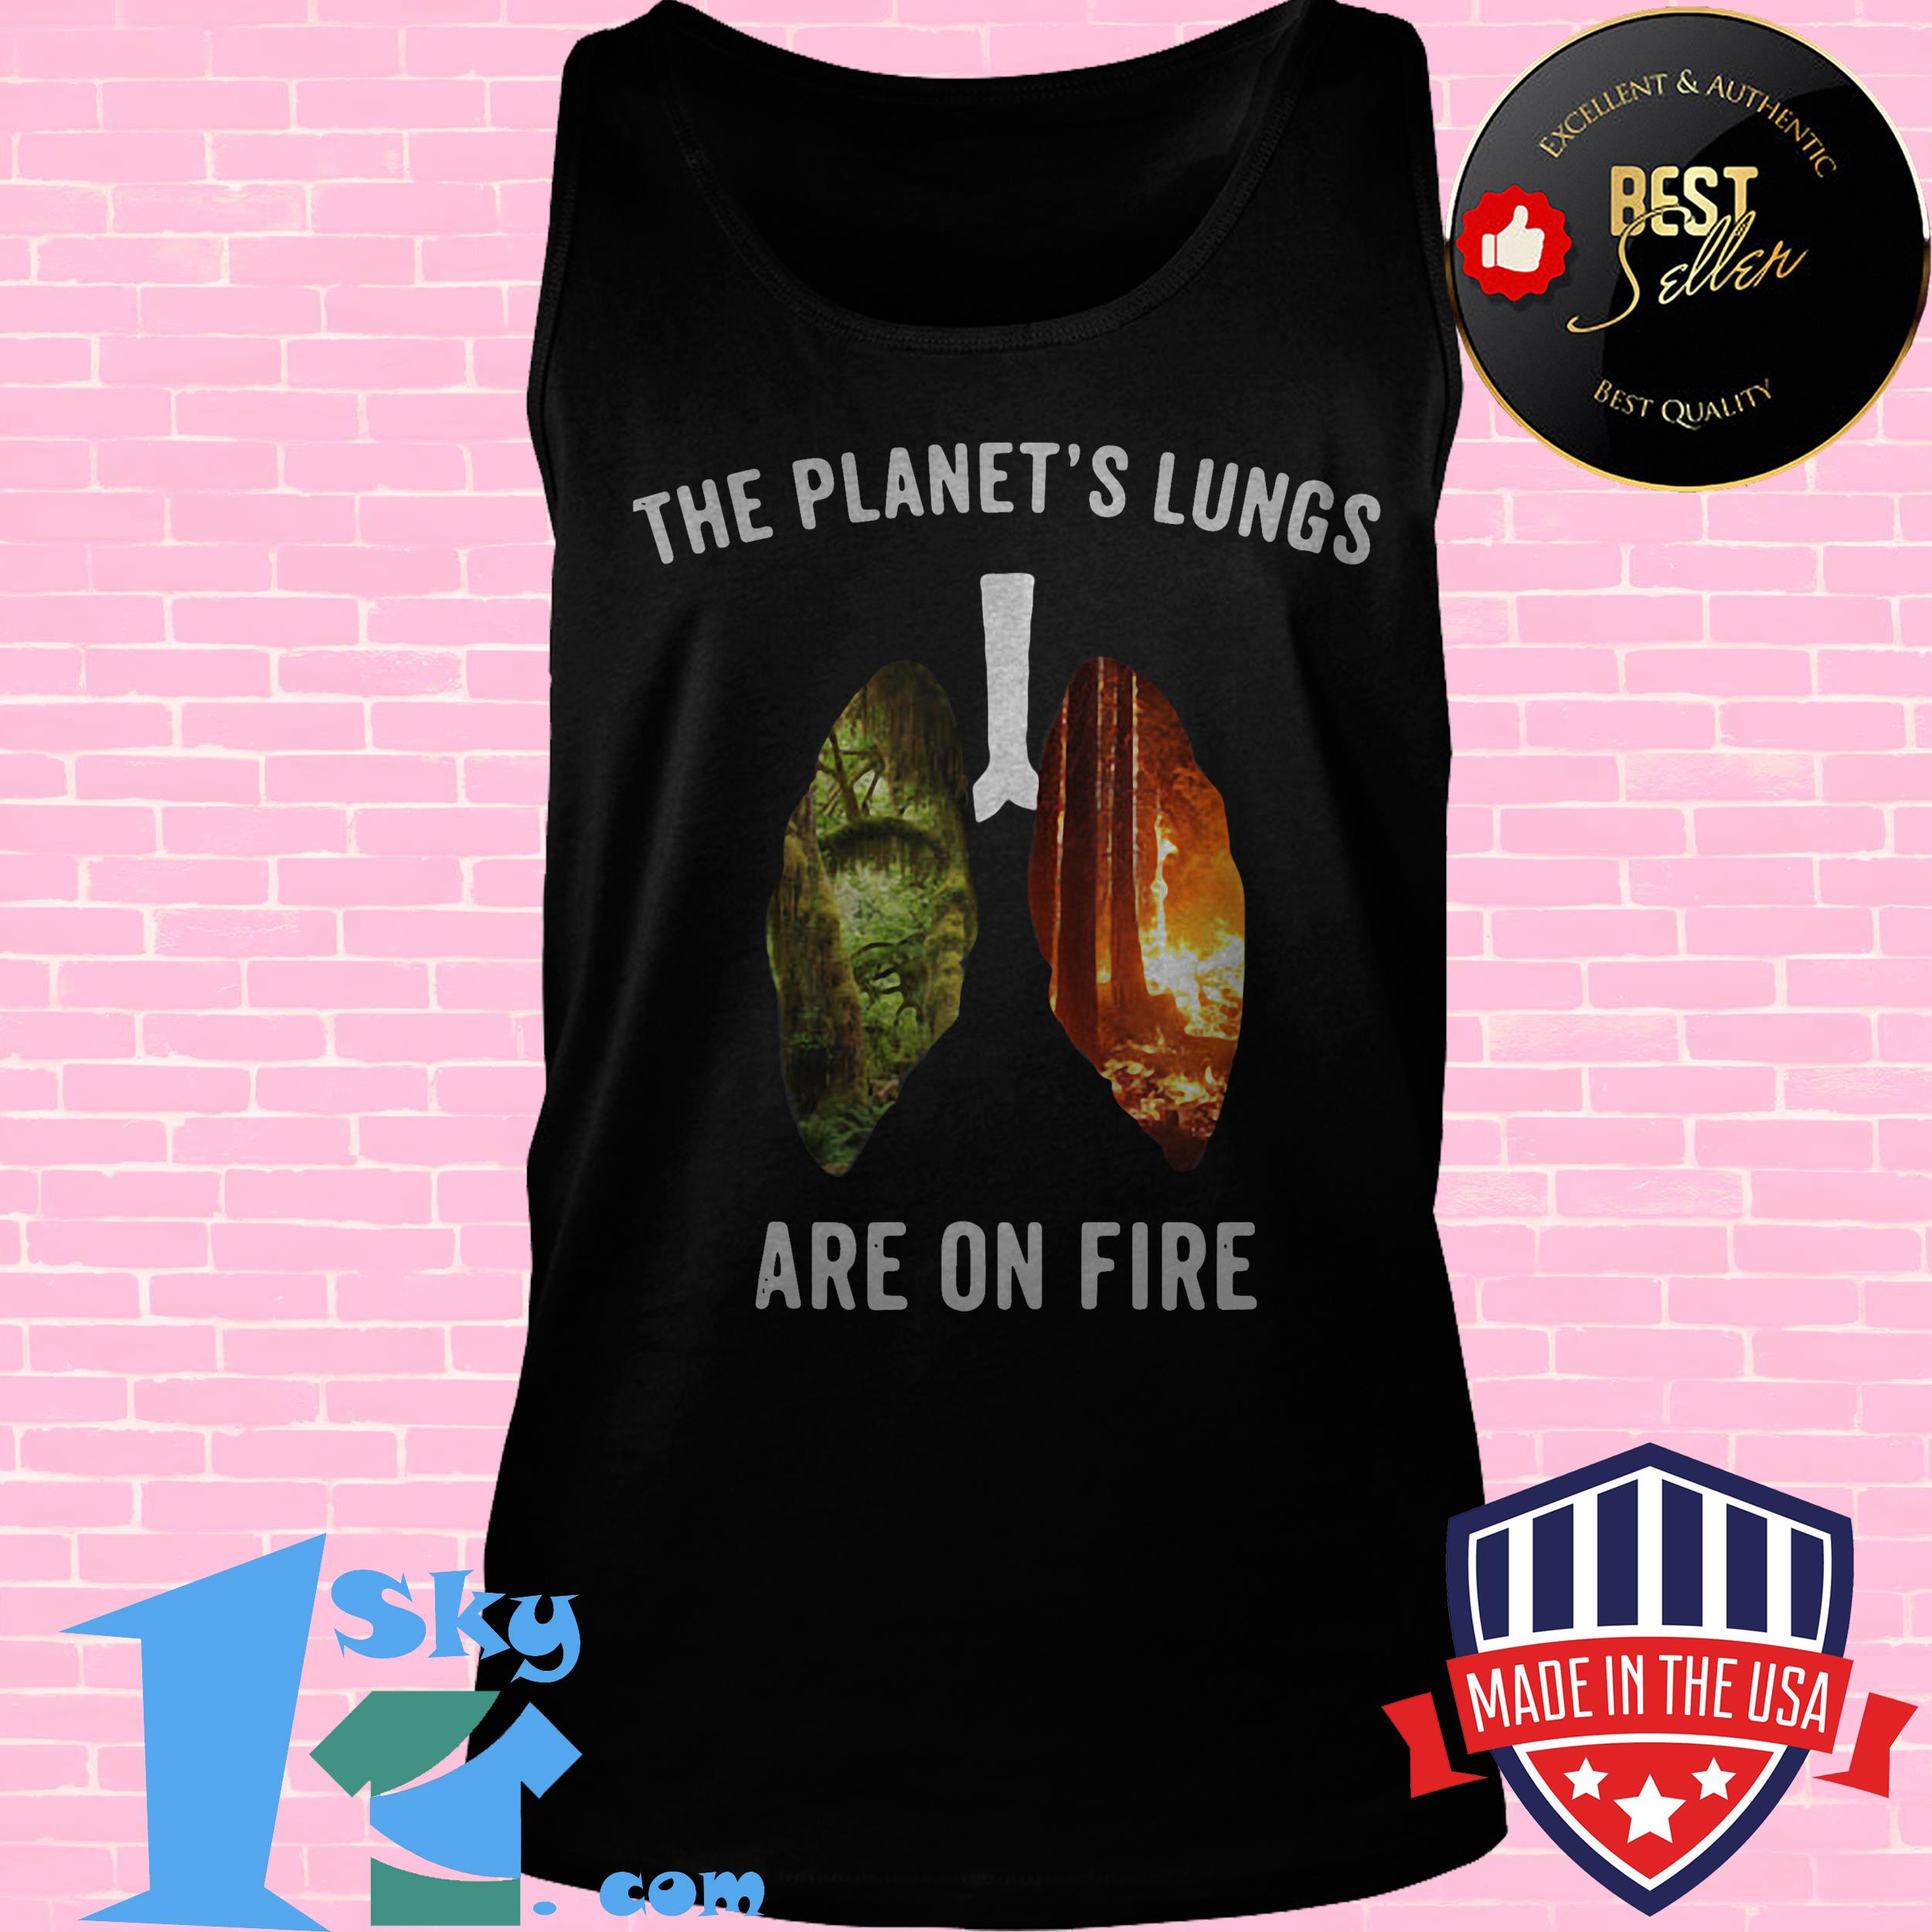 the planets lungs are on fire brazil rainforest burning payforamazon tank top - The Planet's Lungs Are On Fire Brazil Rainforest Burning #payforamazon shirt